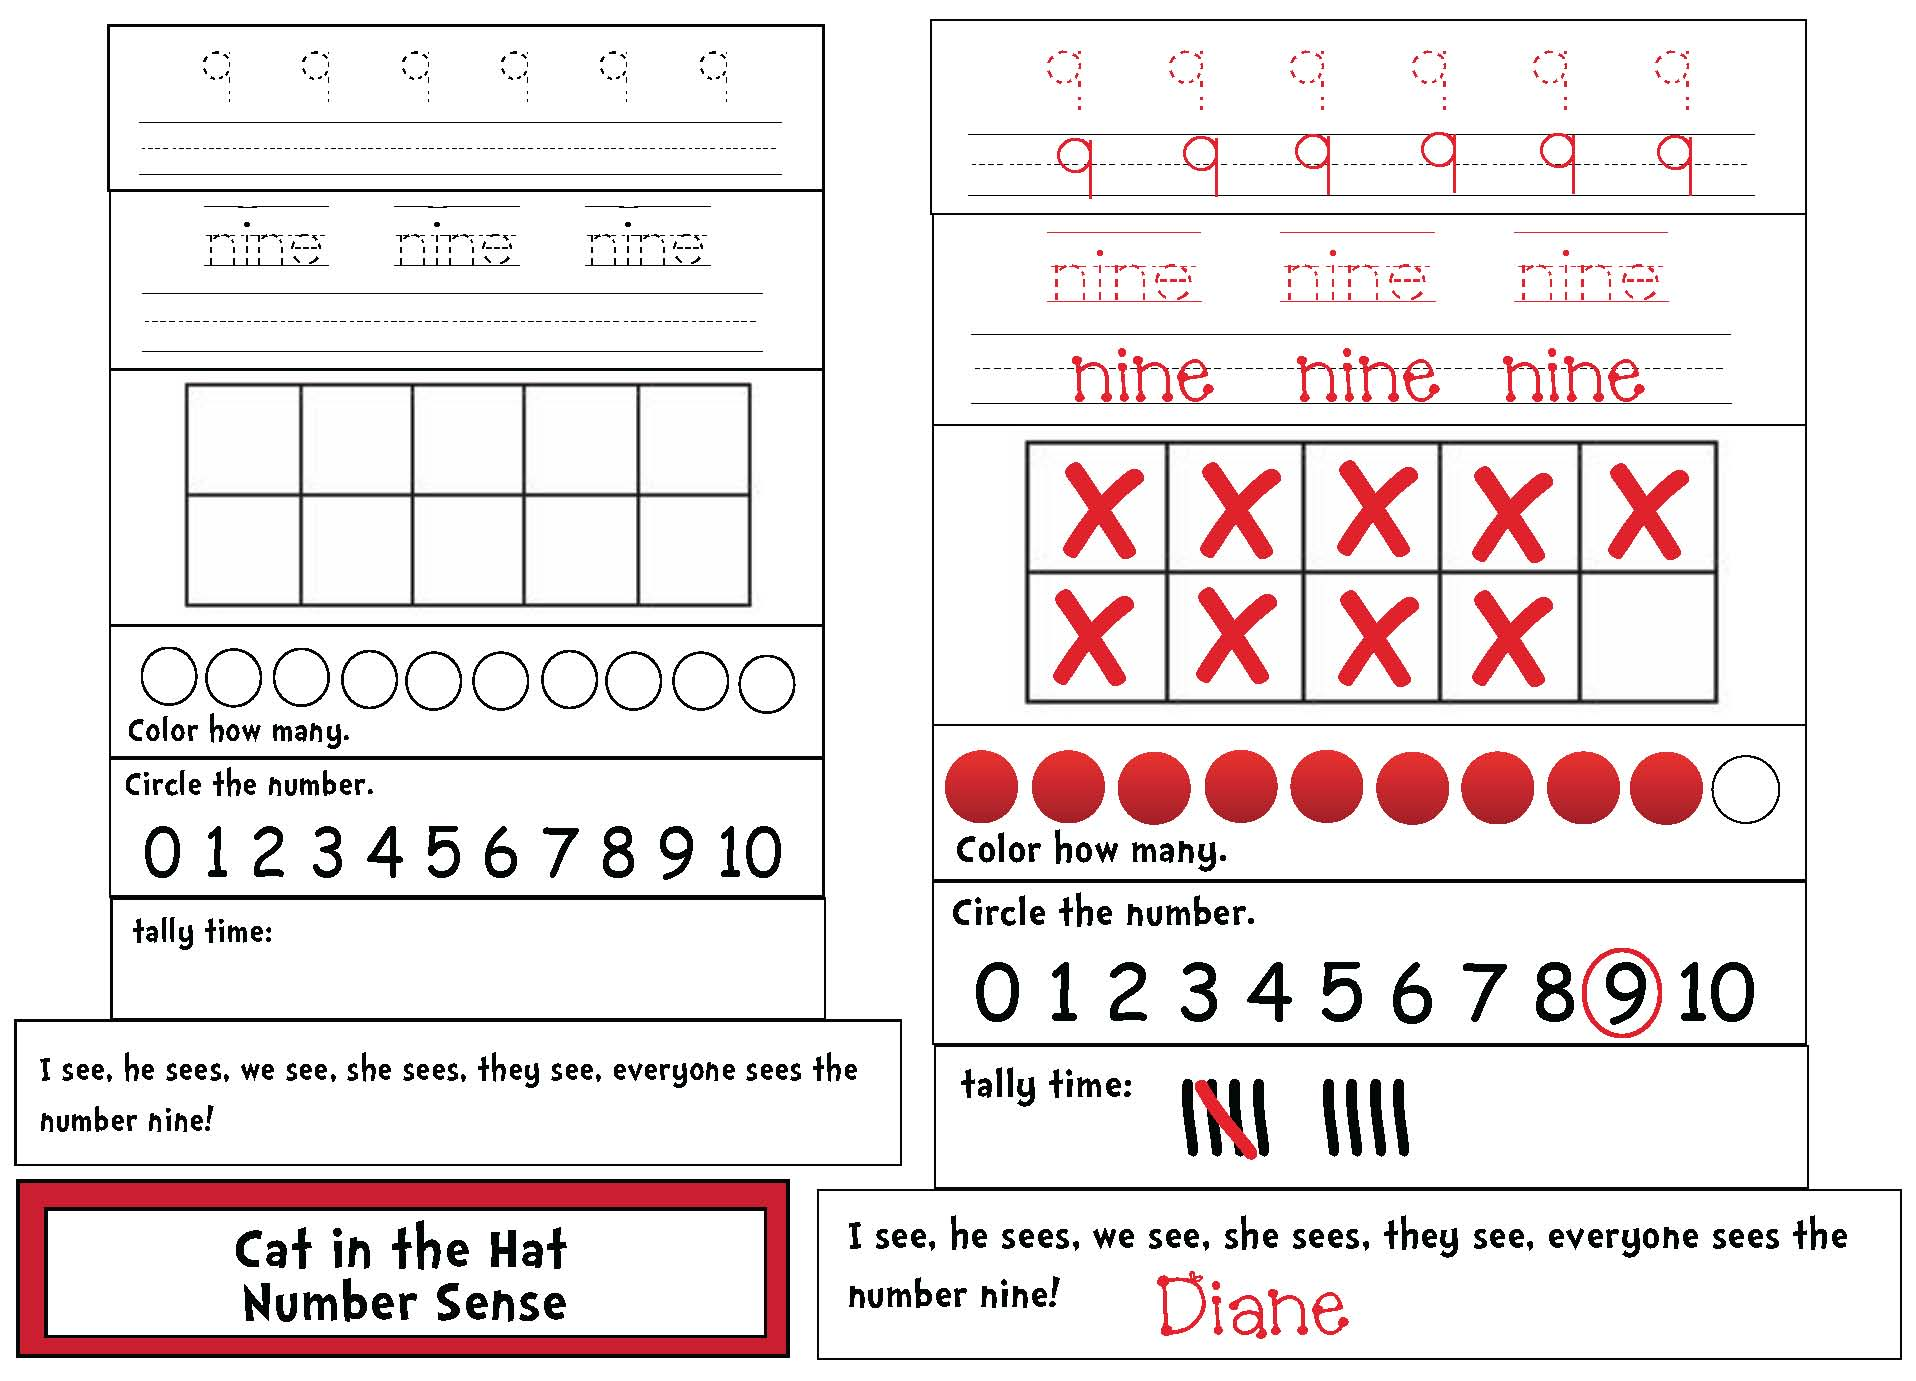 cat in the hat activities, cat in the hat number cards, seuss activities, seuss games, cat in the hat games, addition activities, subtraction activities, common core seuss, greater and less than activities, odd and even activities, PK and K math worksheets, math symbol bookmark,